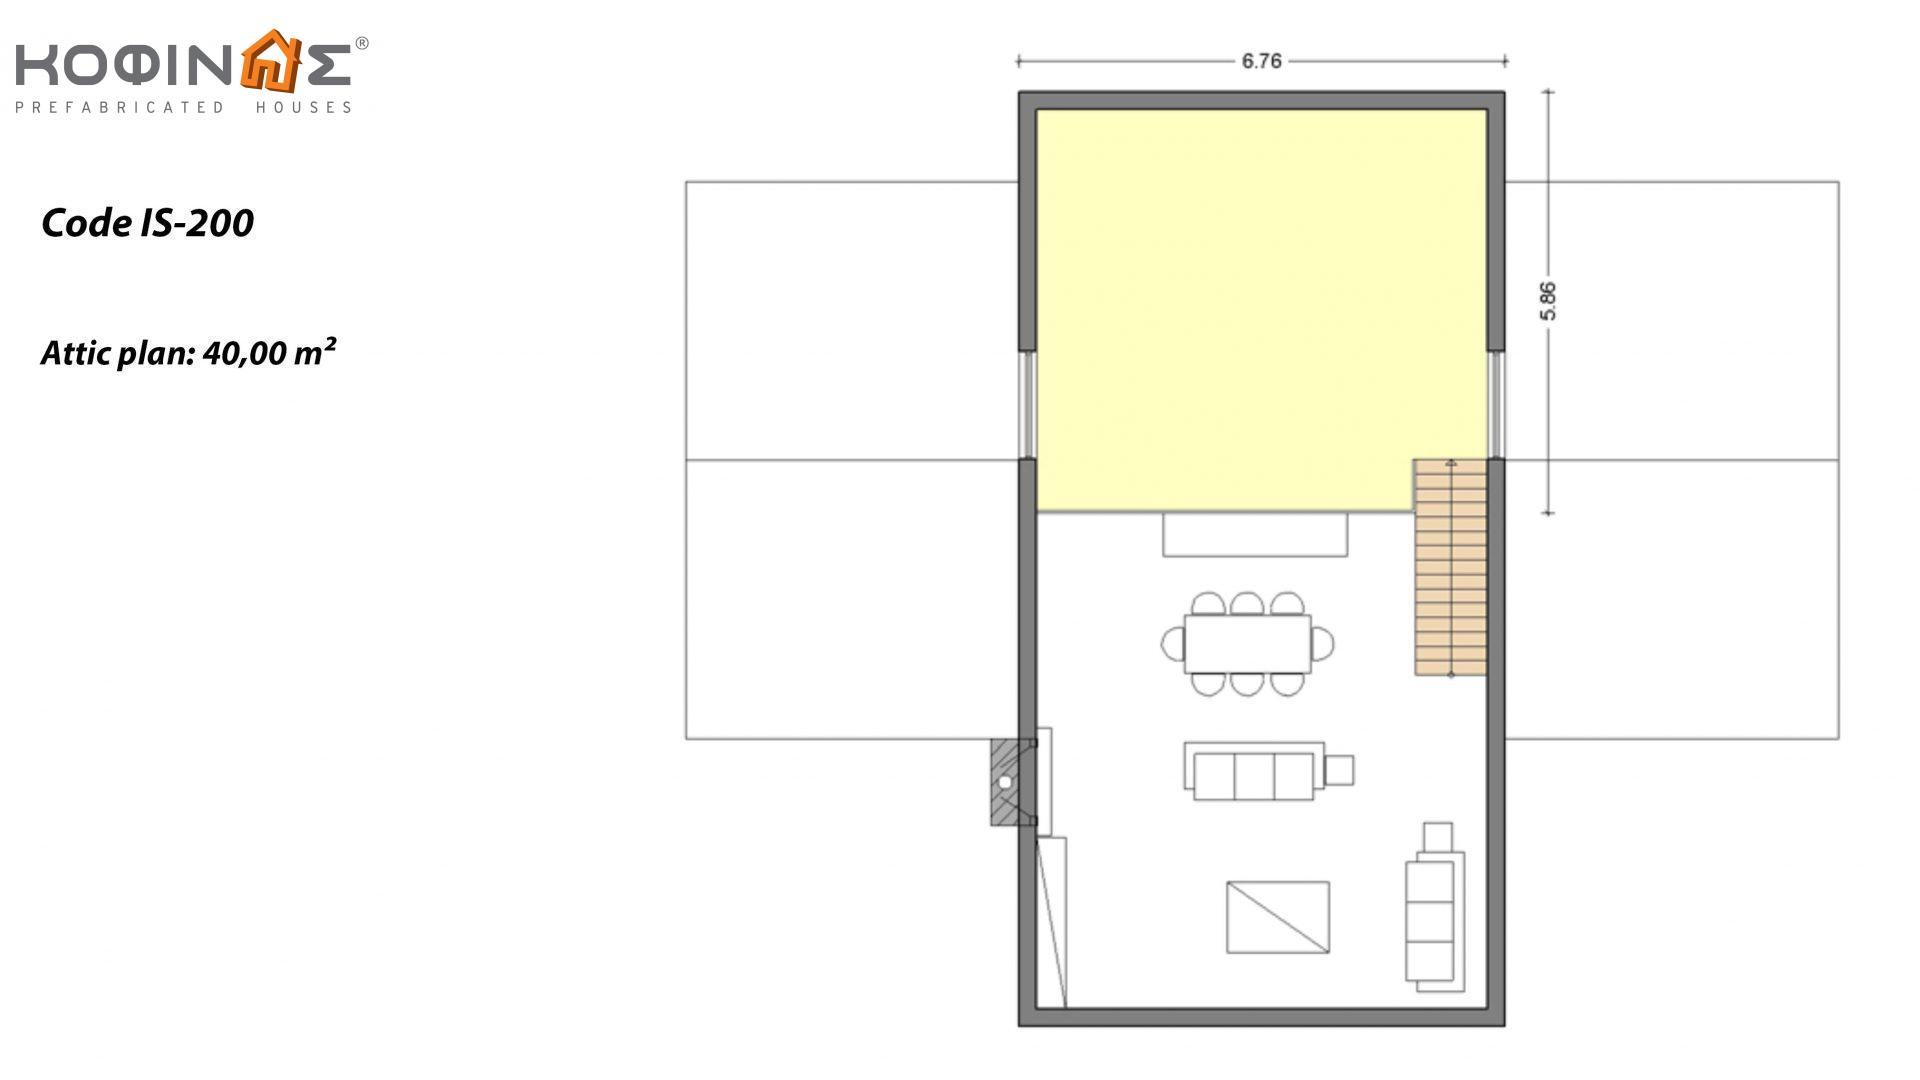 1-story house with attic IS-200, total surface of 200,00 m²,roofed areas 2,50 m²